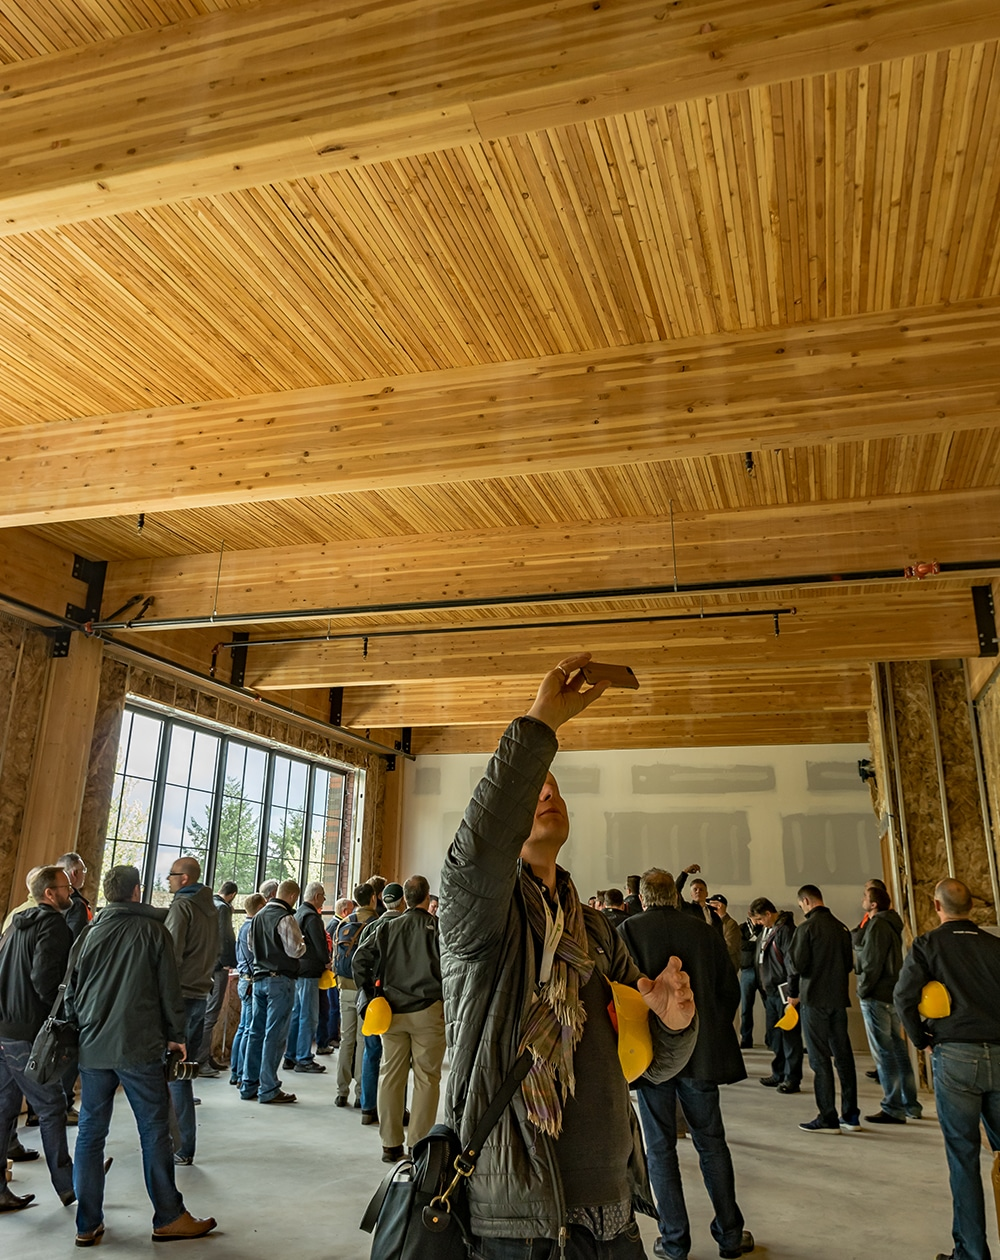 Cross laminated timber and other mass timber at the International Mass Timber Conference